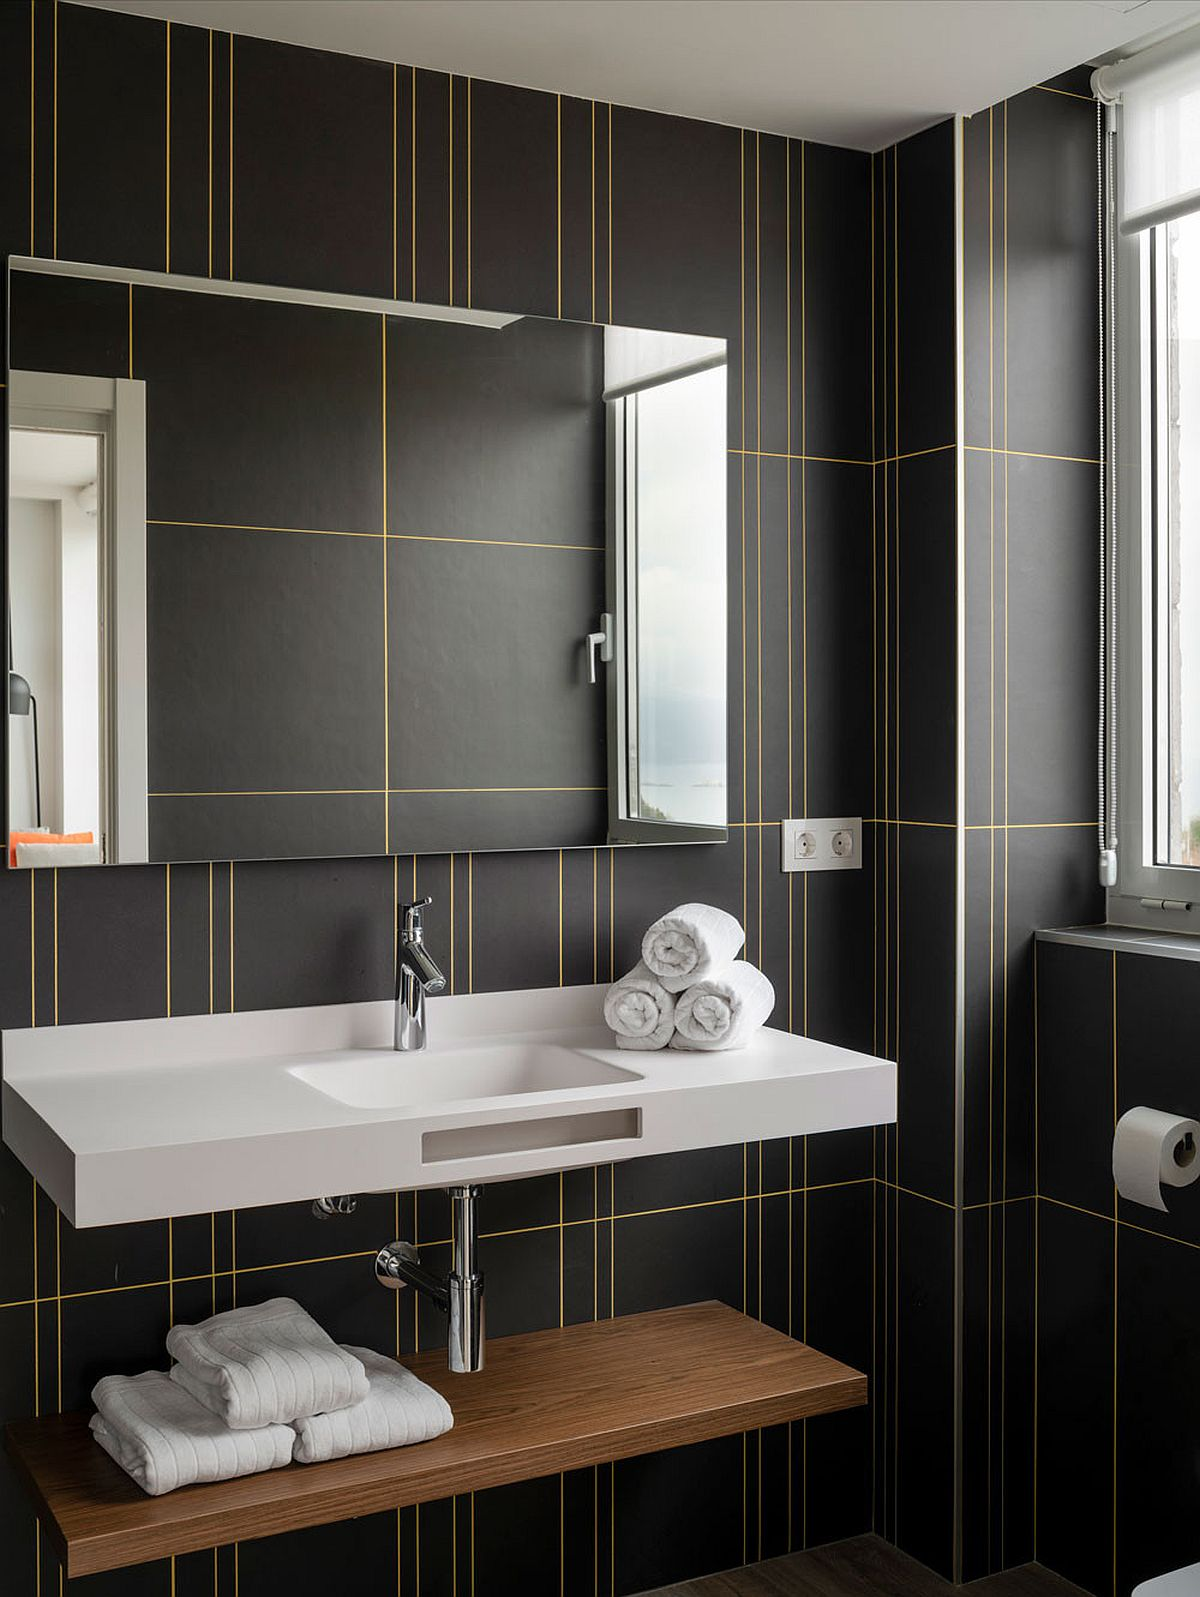 Dashing-use-of-yellow-lines-in-a-minimalist-manner-steal-the-show-in-this-dark-gray-bathroom-41026